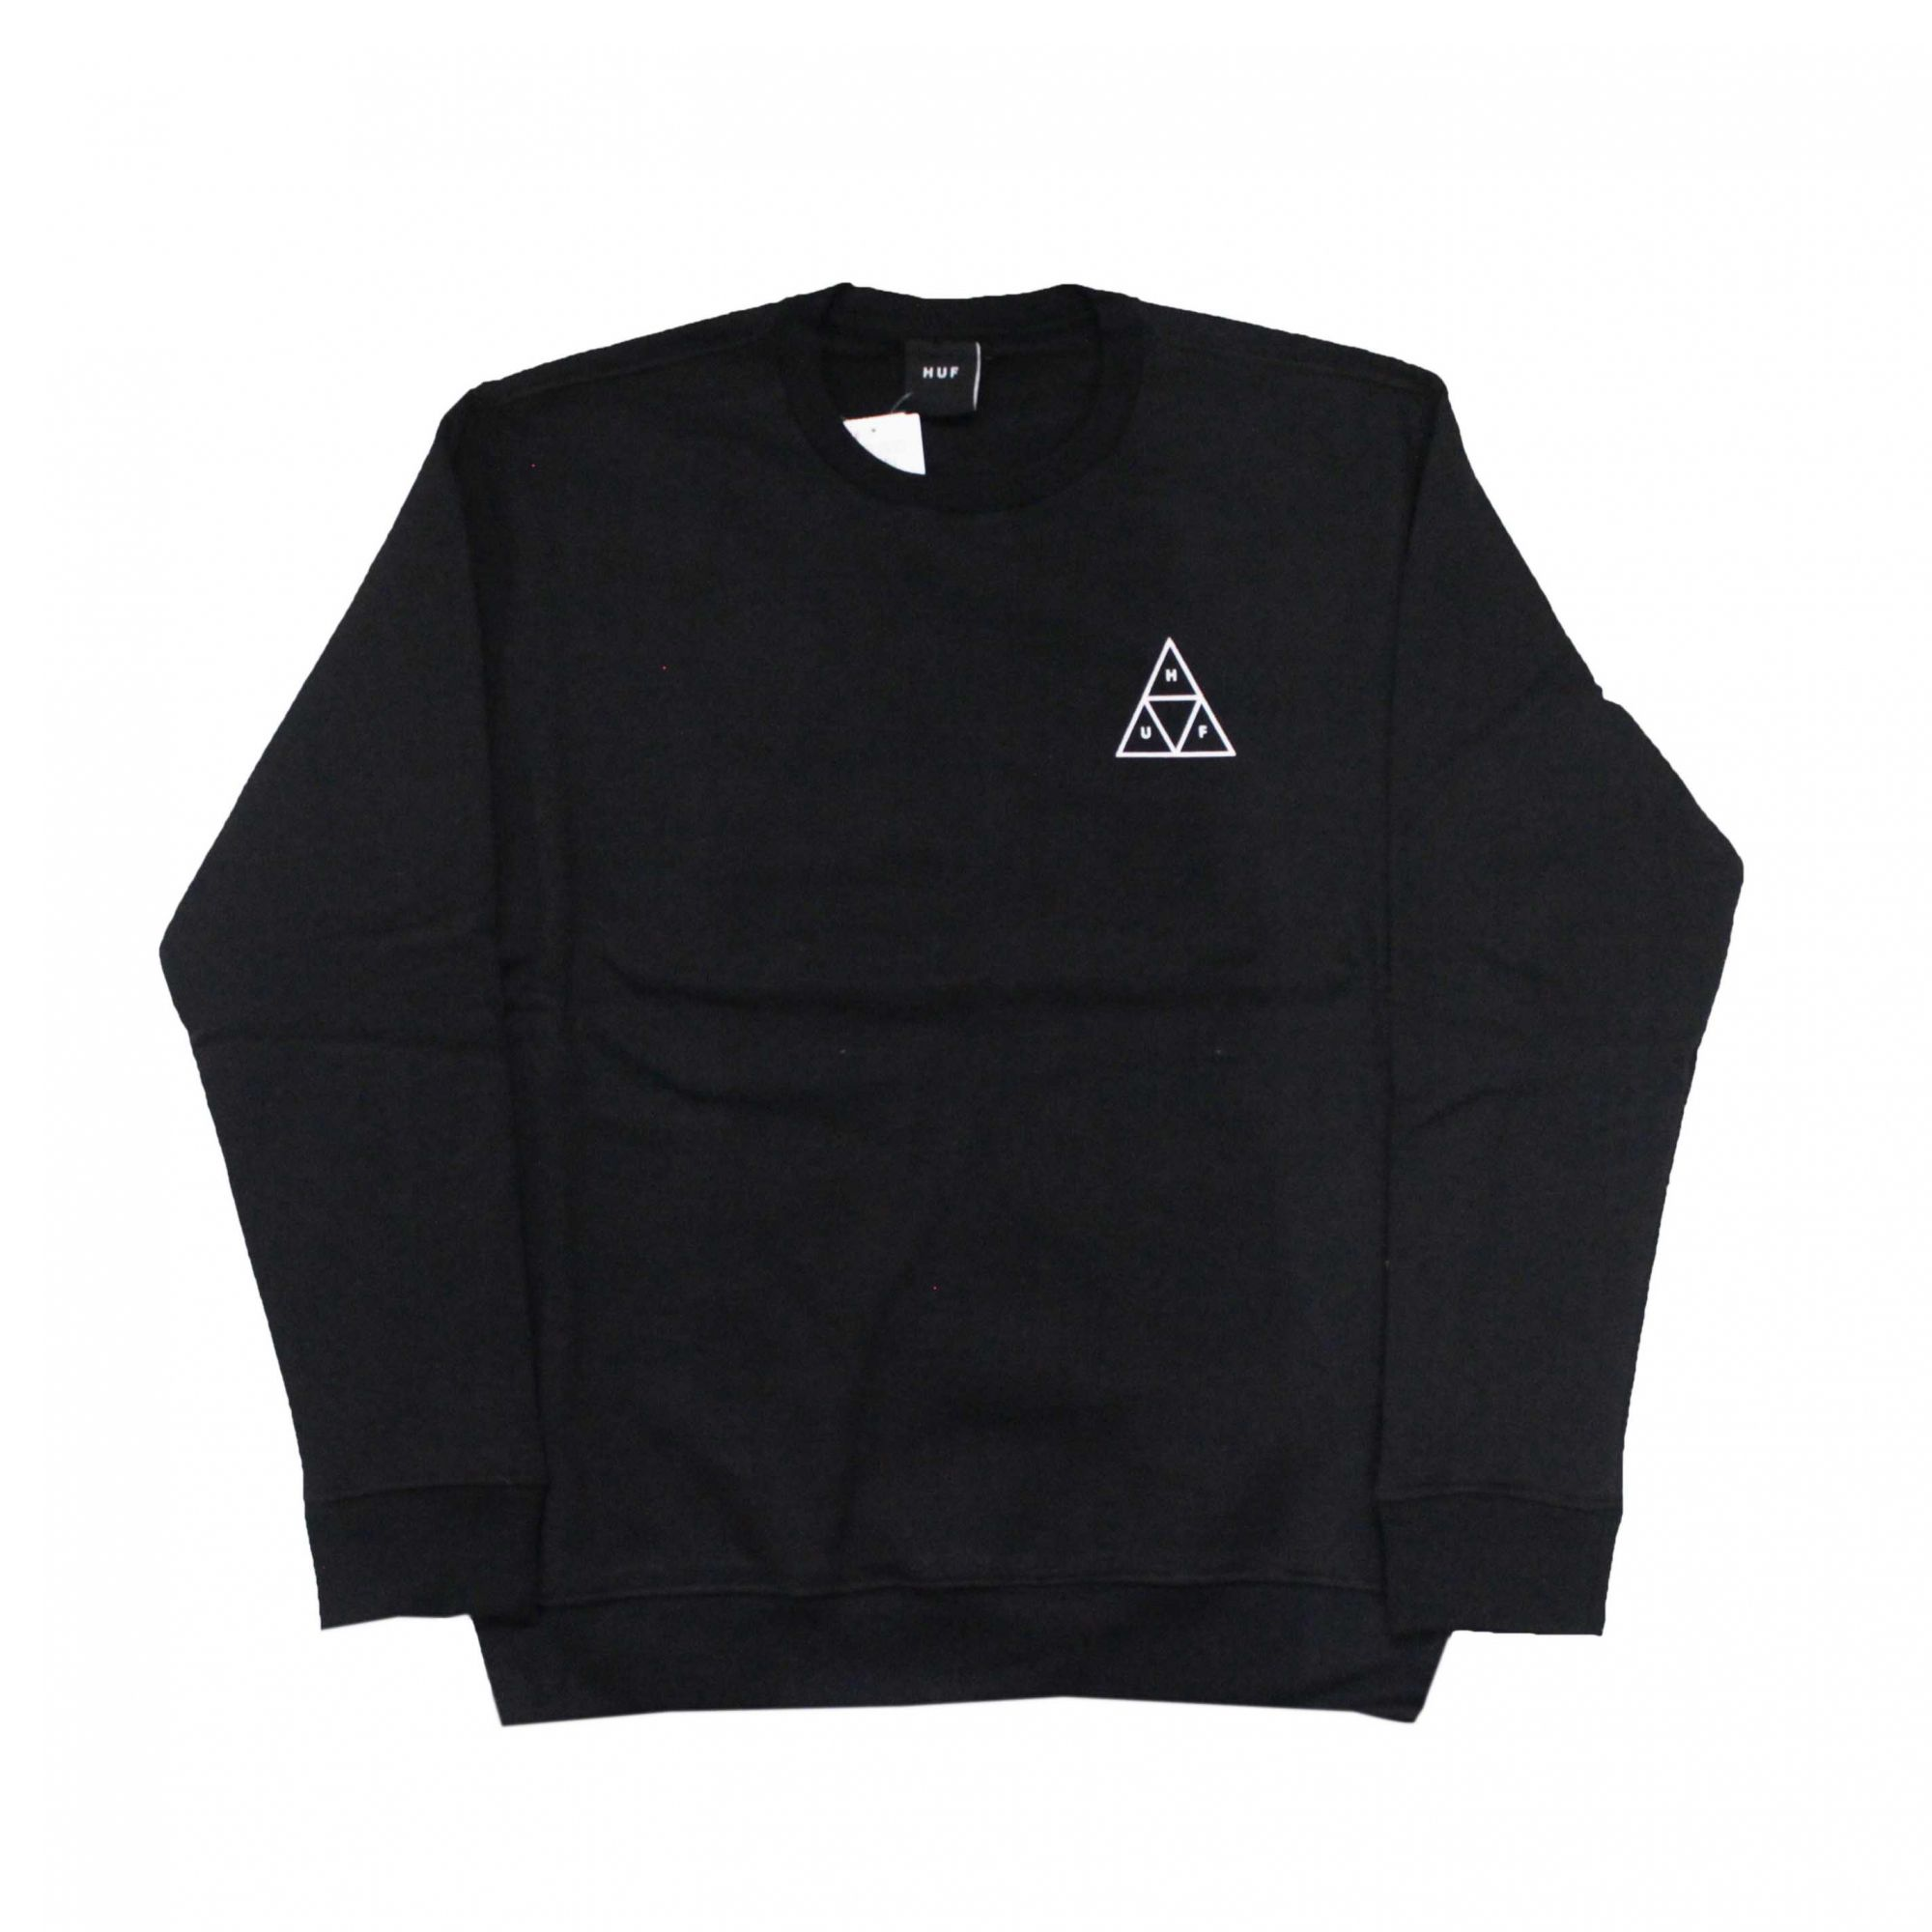 Moletom HUF Careca Essentials TT Preto